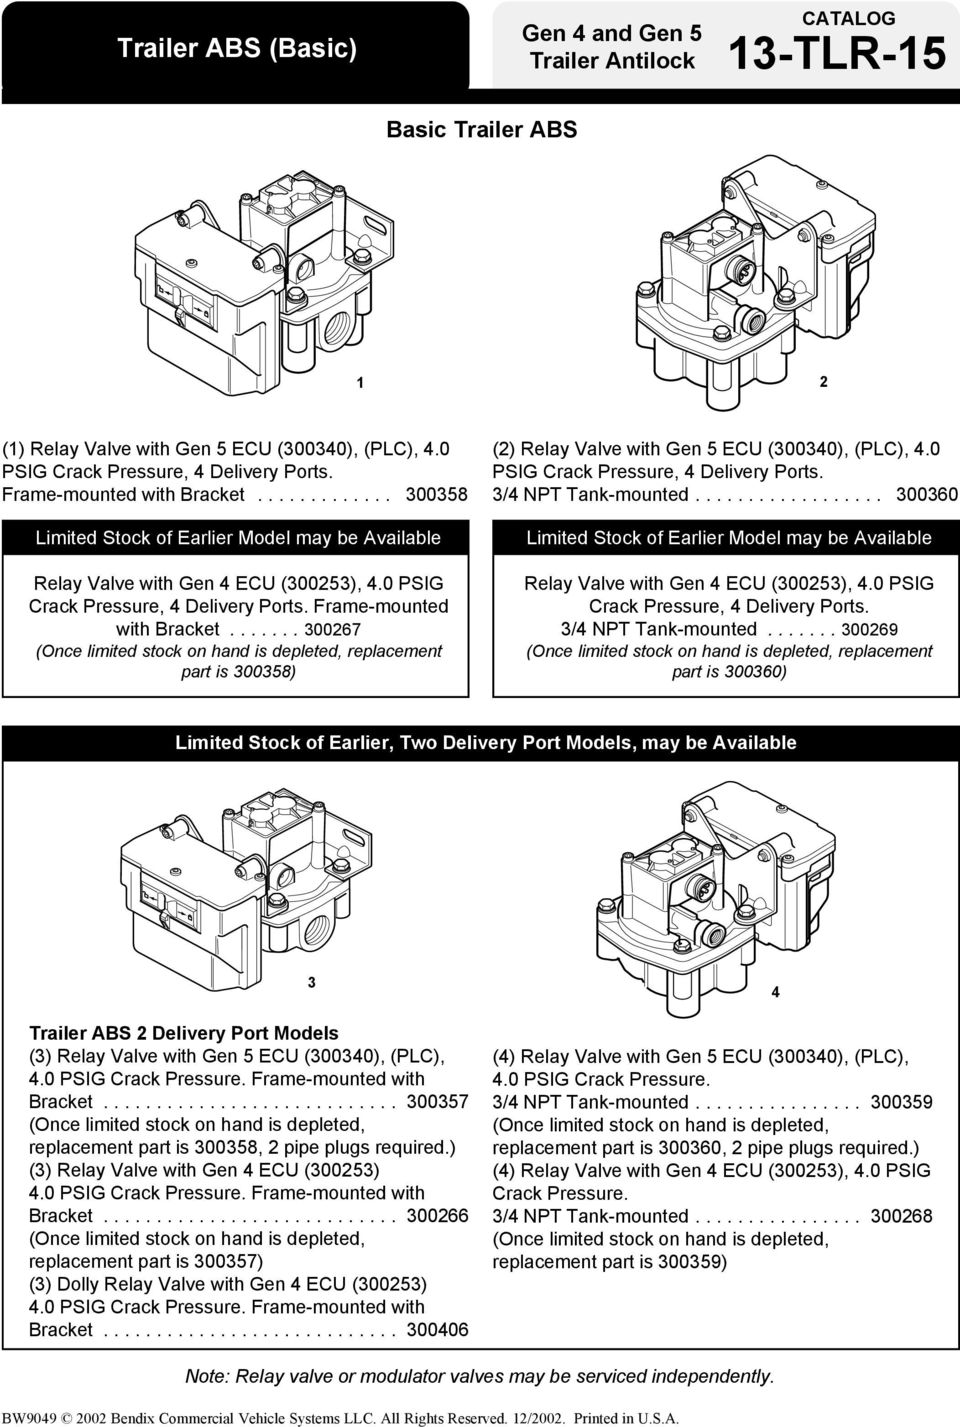 Bendix Abs For Trailers Pdf Trailer Wiring Diagram Frame Mounted With Bracket 300267 Once Limited